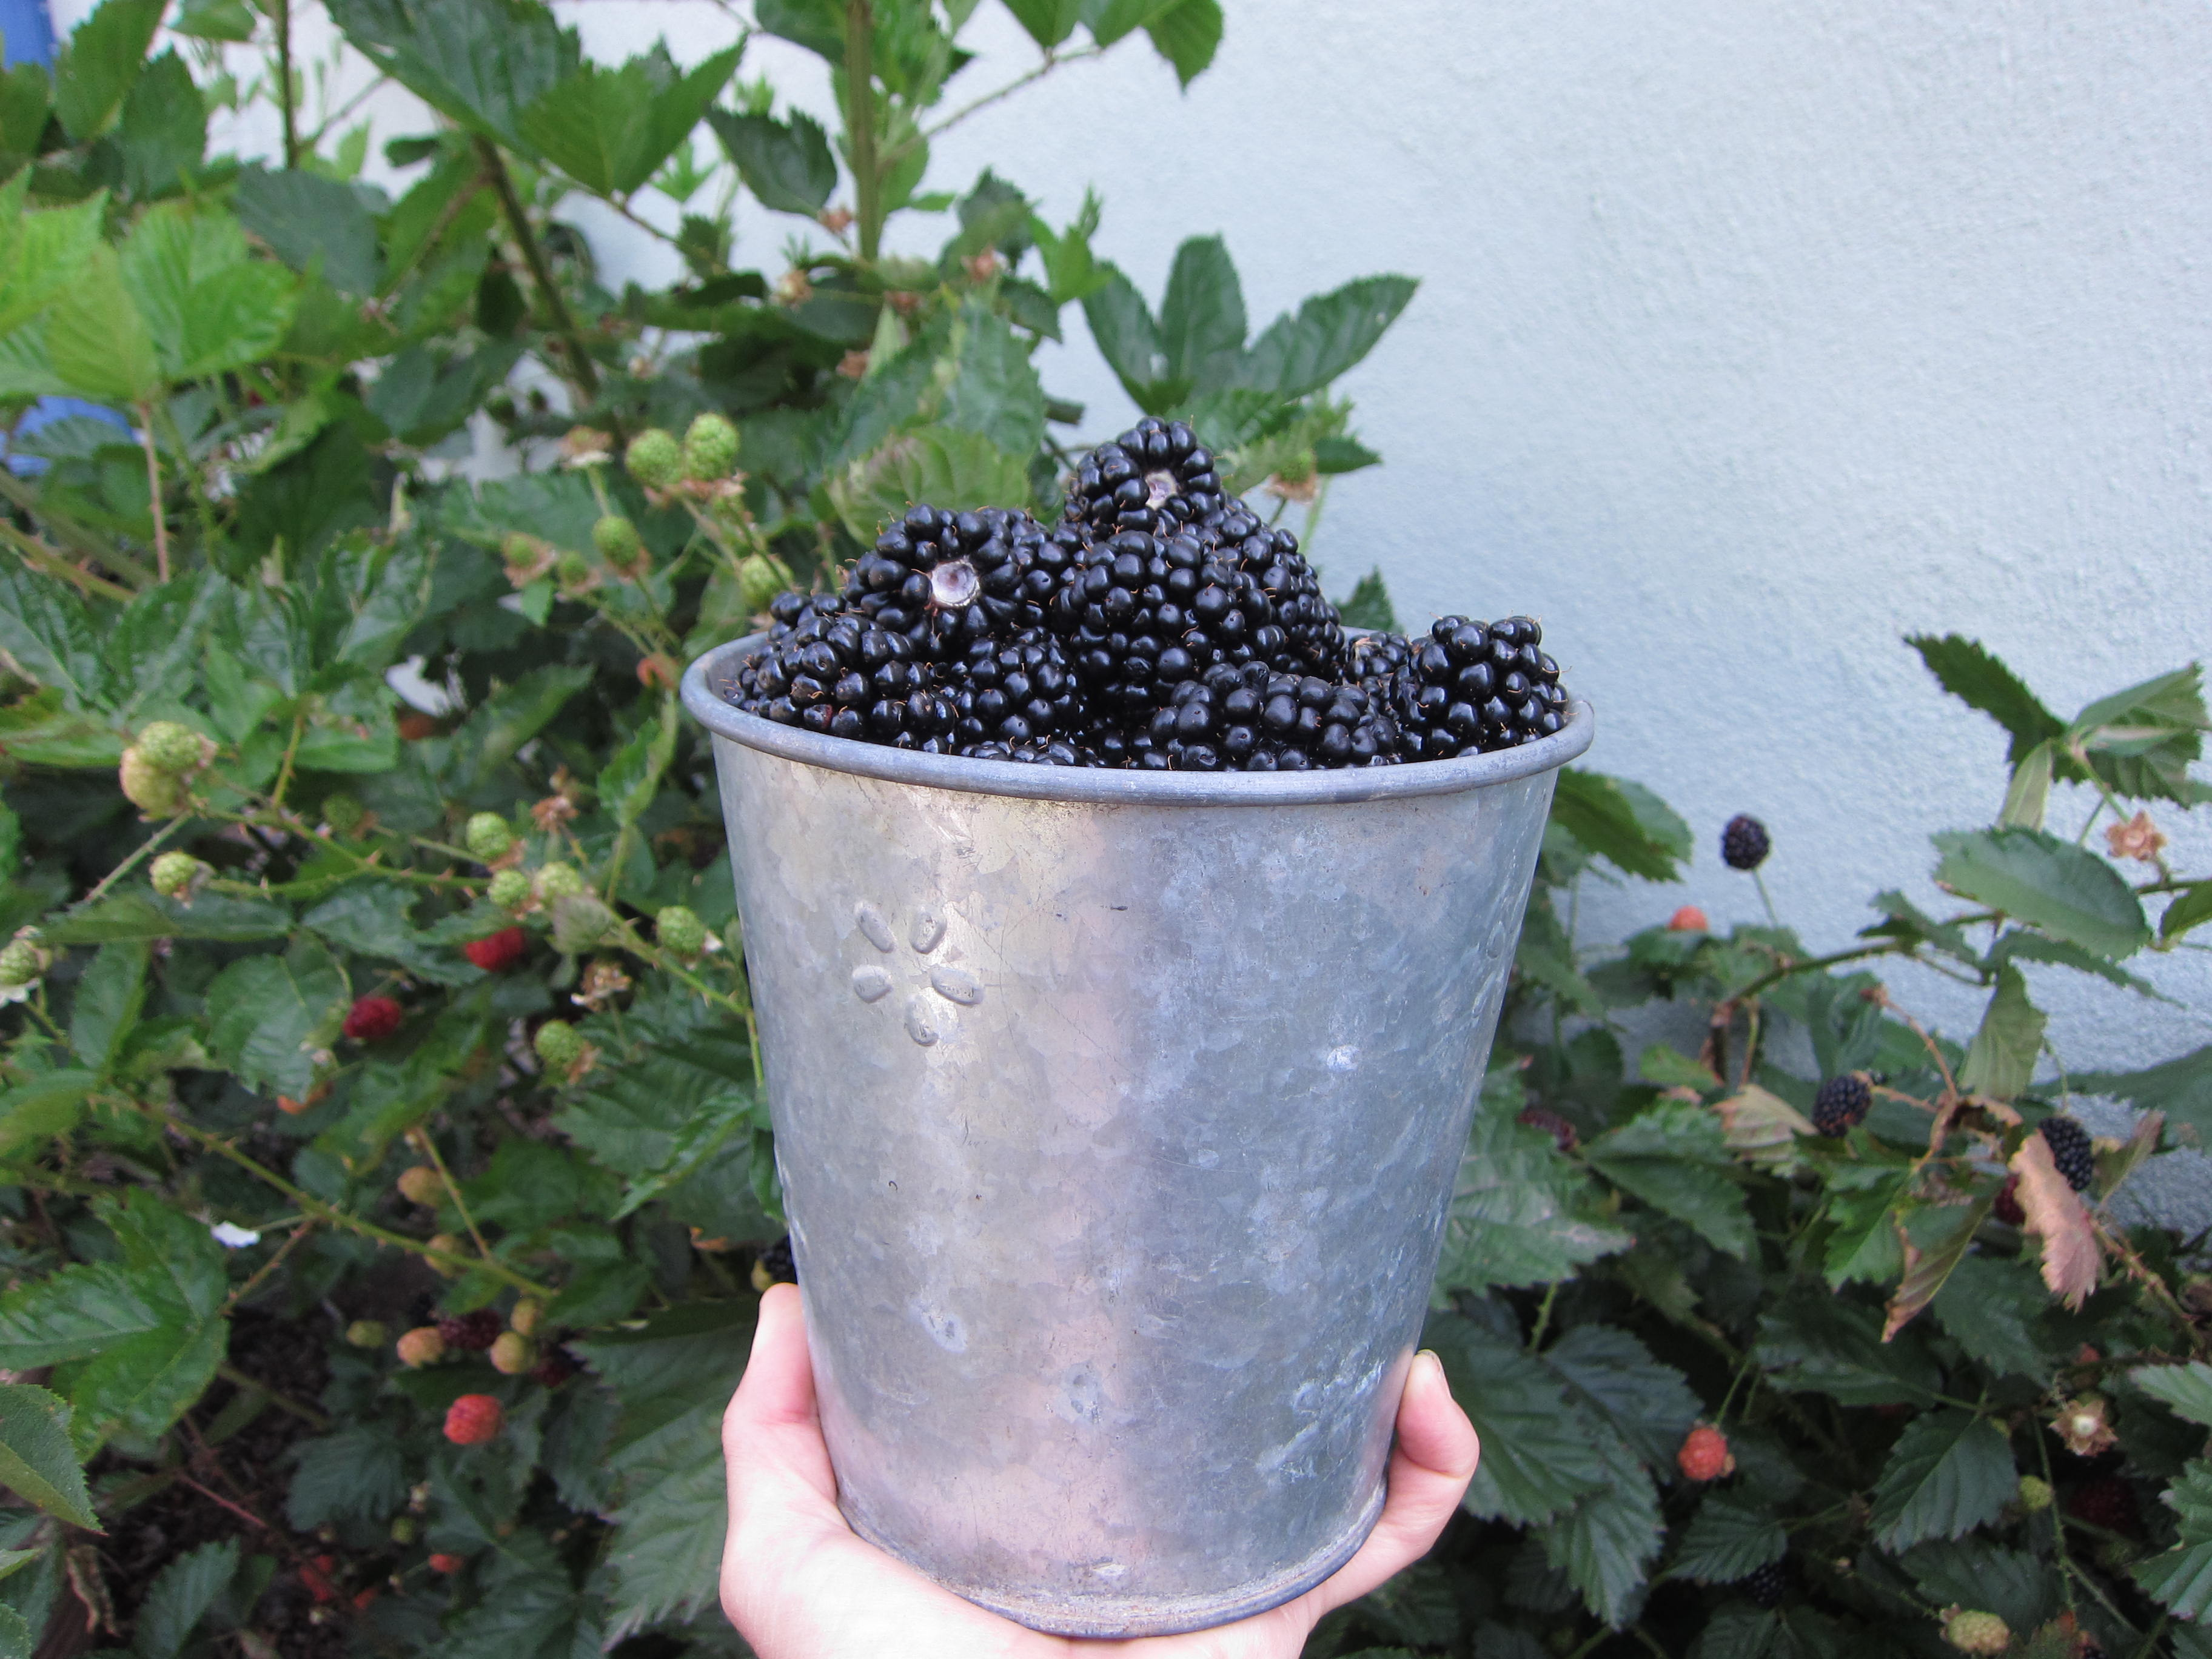 More than a quart of blackberries in one picking!